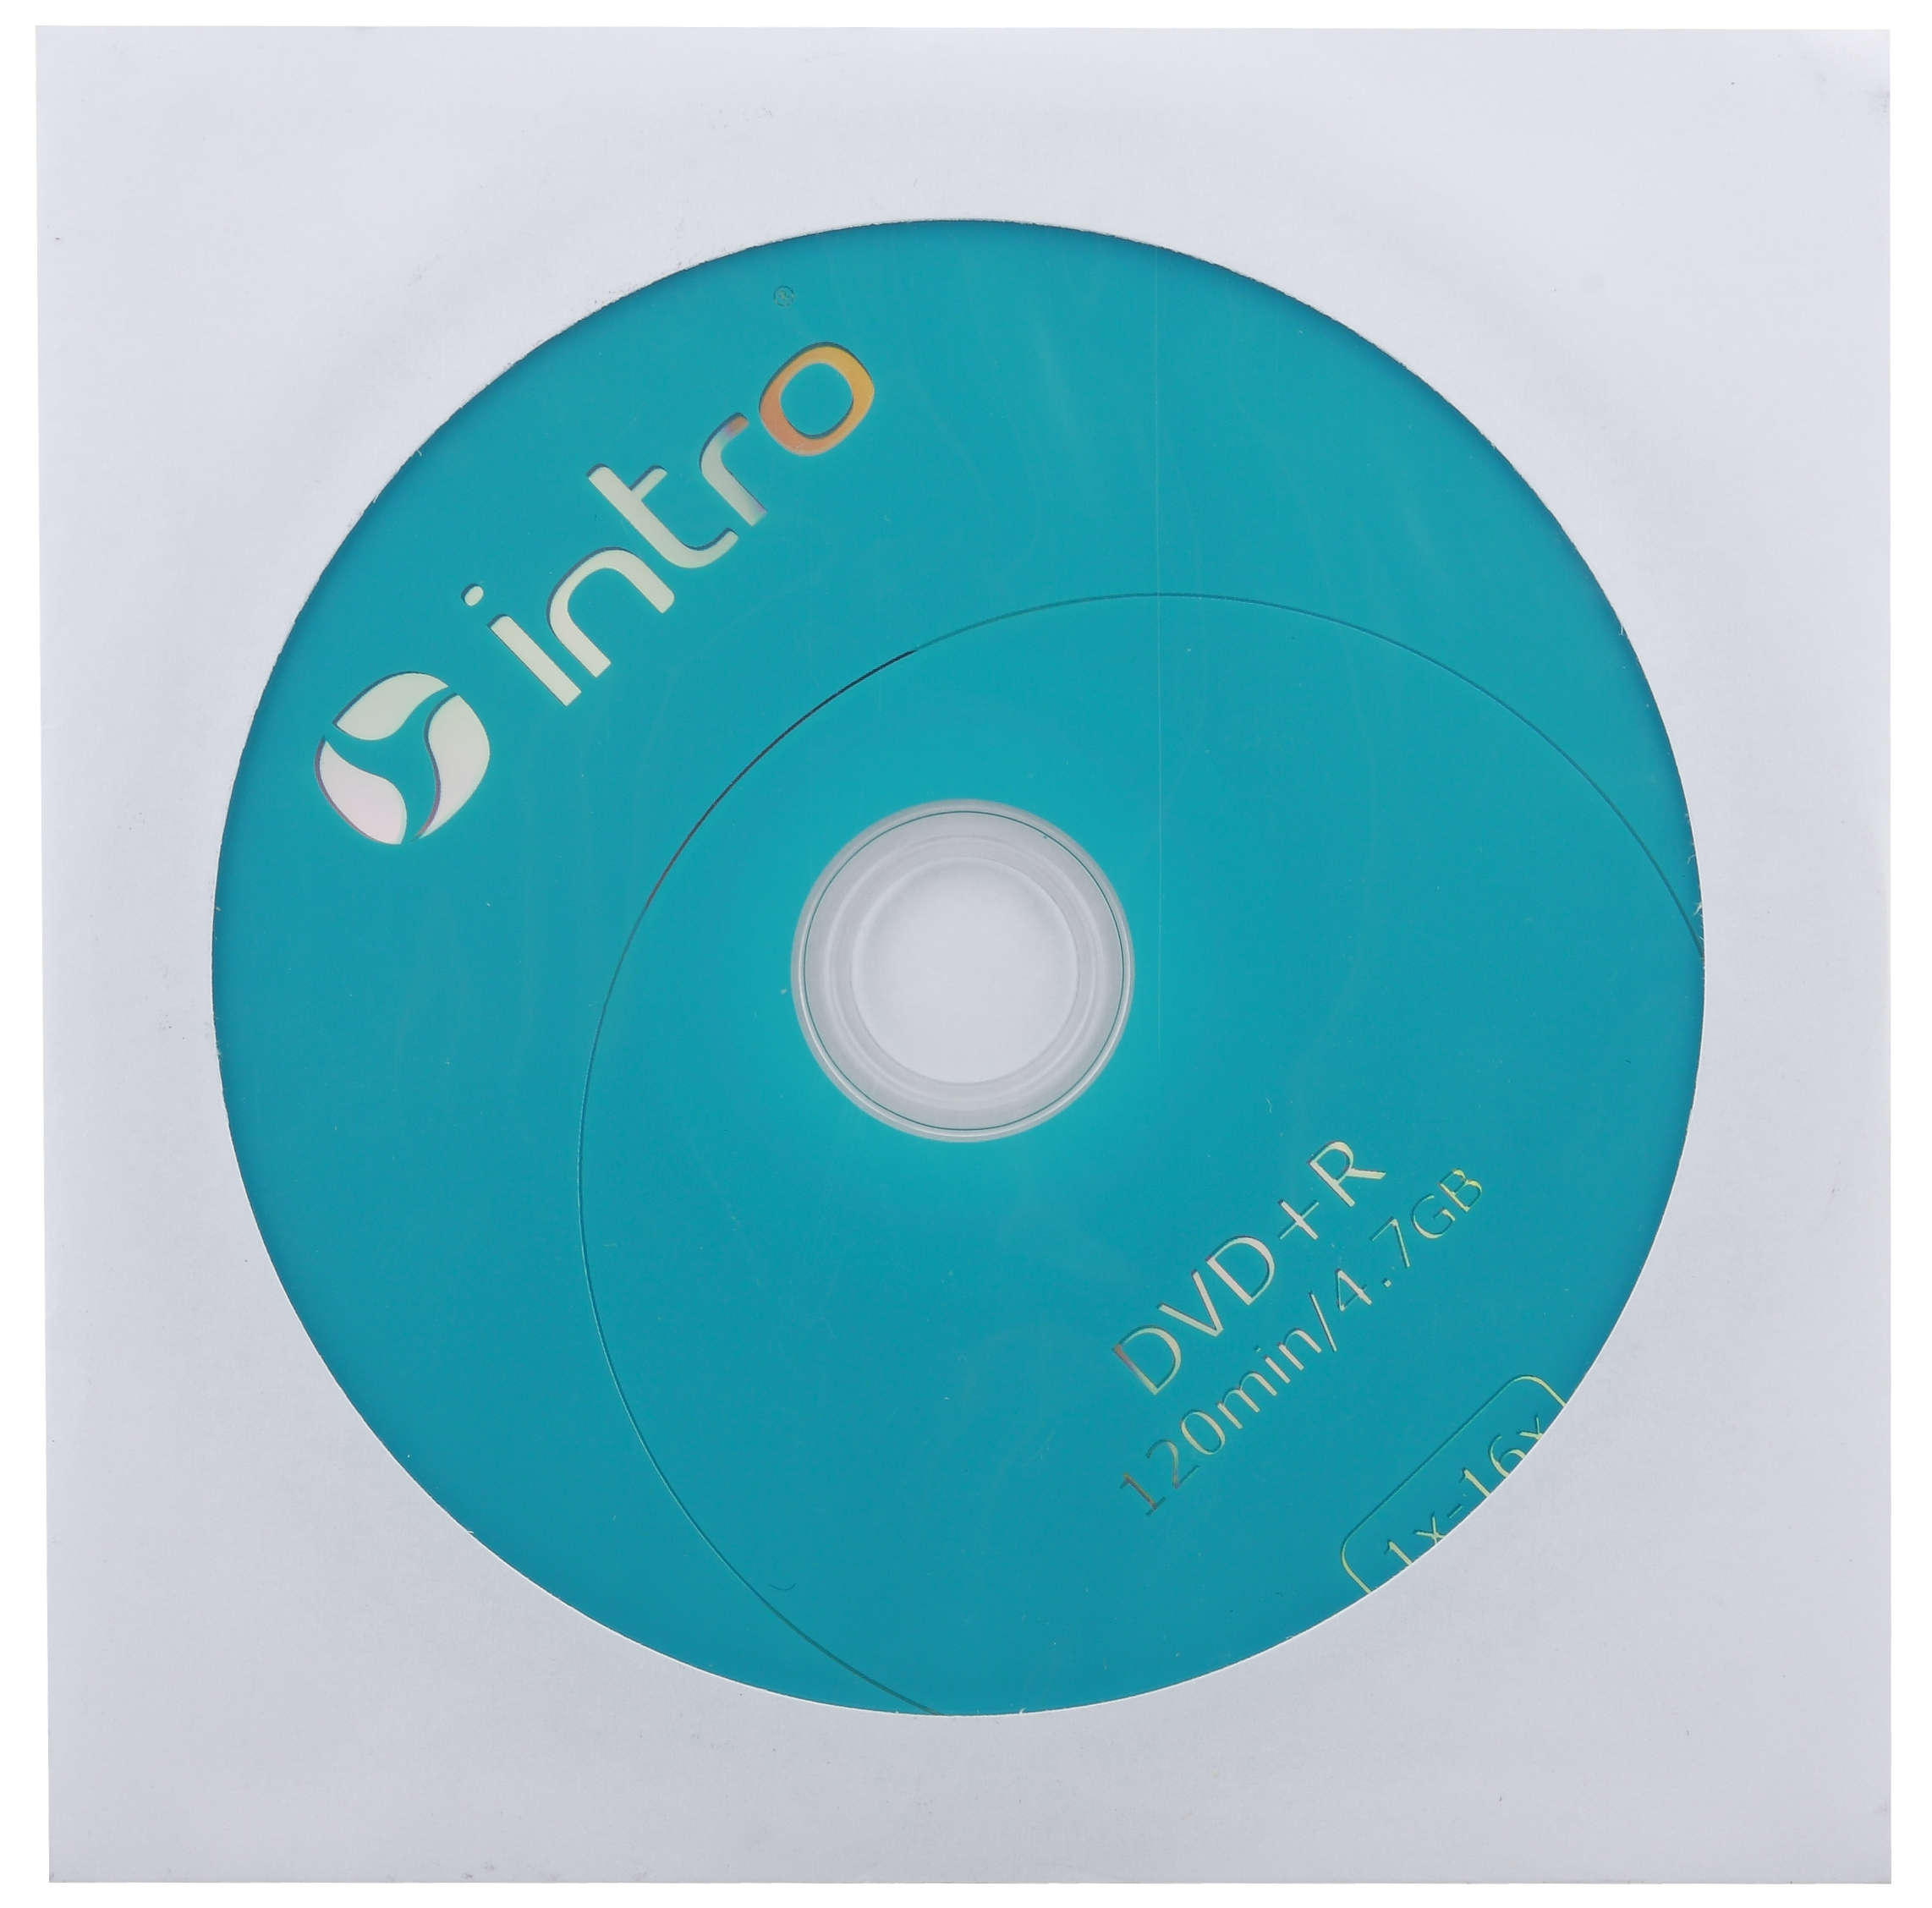 Intro DVD+R INTRO 16X 4,7GB  конверт (150/600/14400)